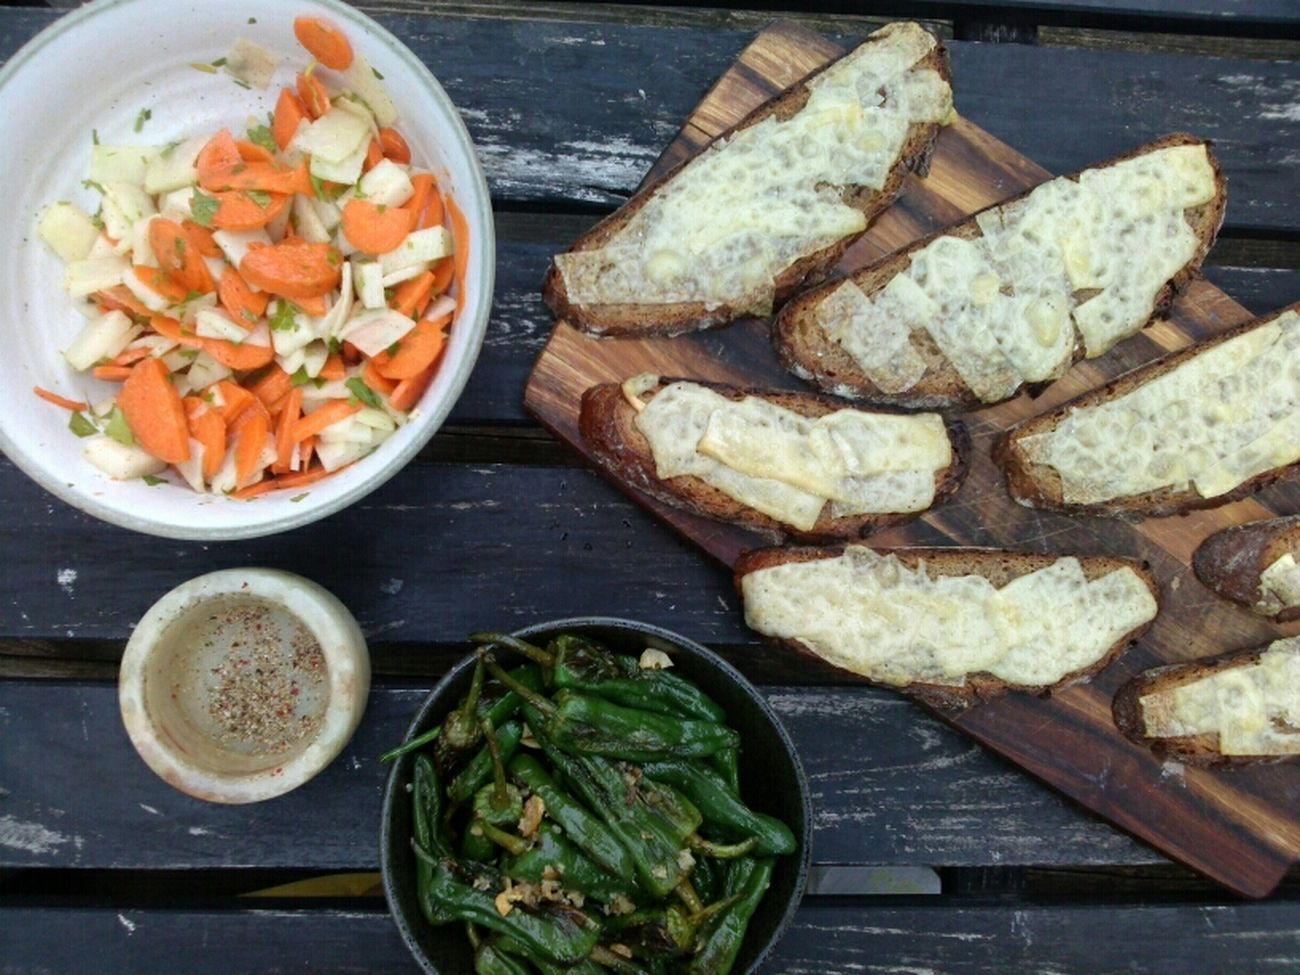 cheese bread salad pimiento de padròn Salad Organic Thx4cooking  Josephbrot